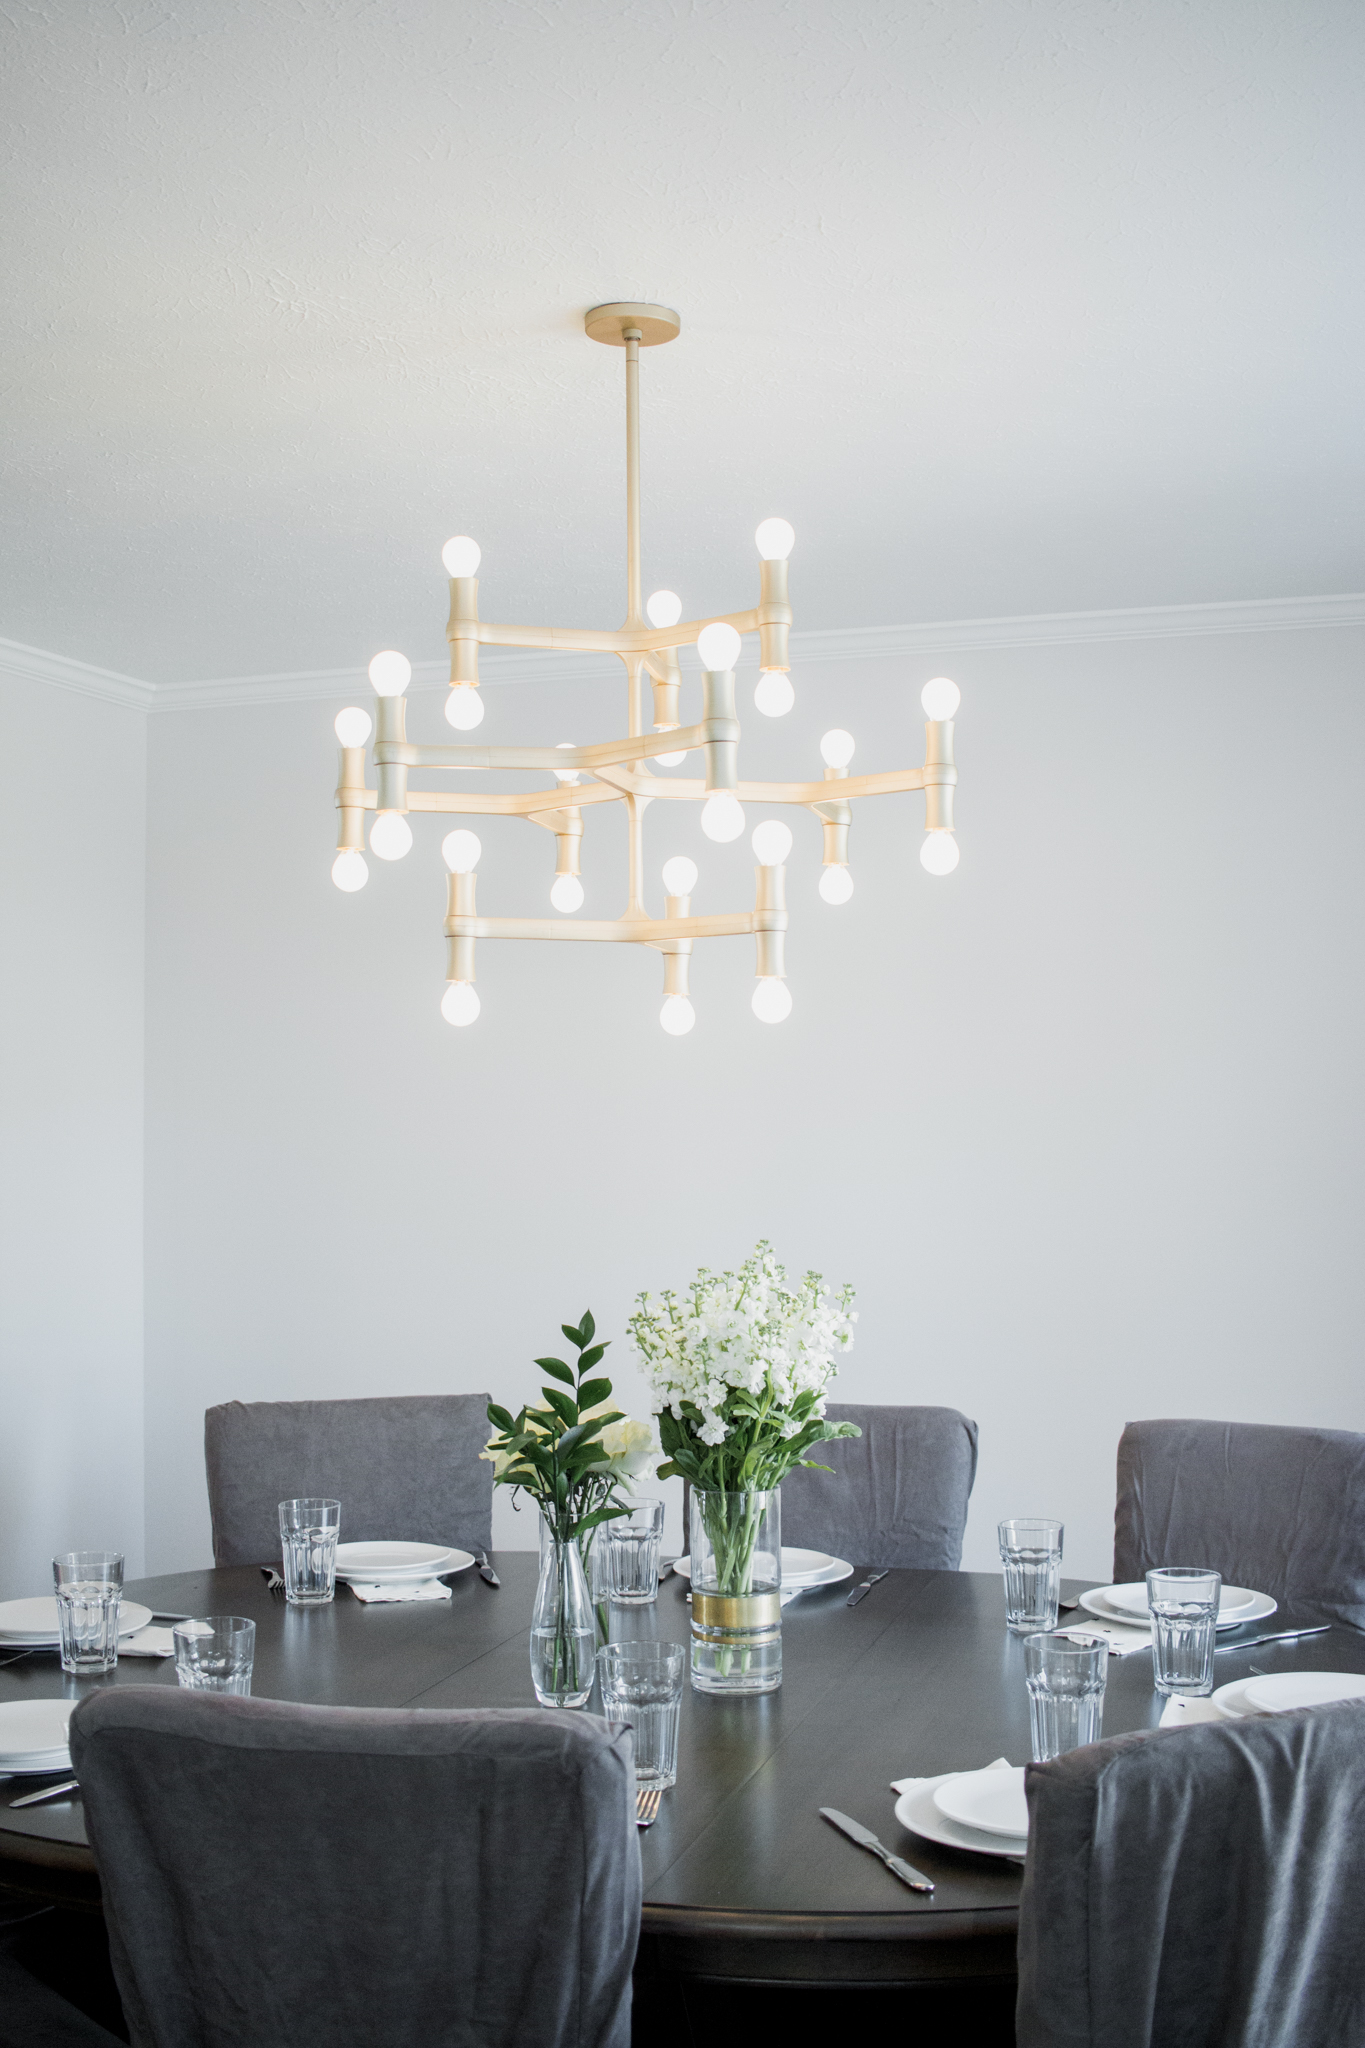 Interior Design Photography for Stella of The Heart's Delight